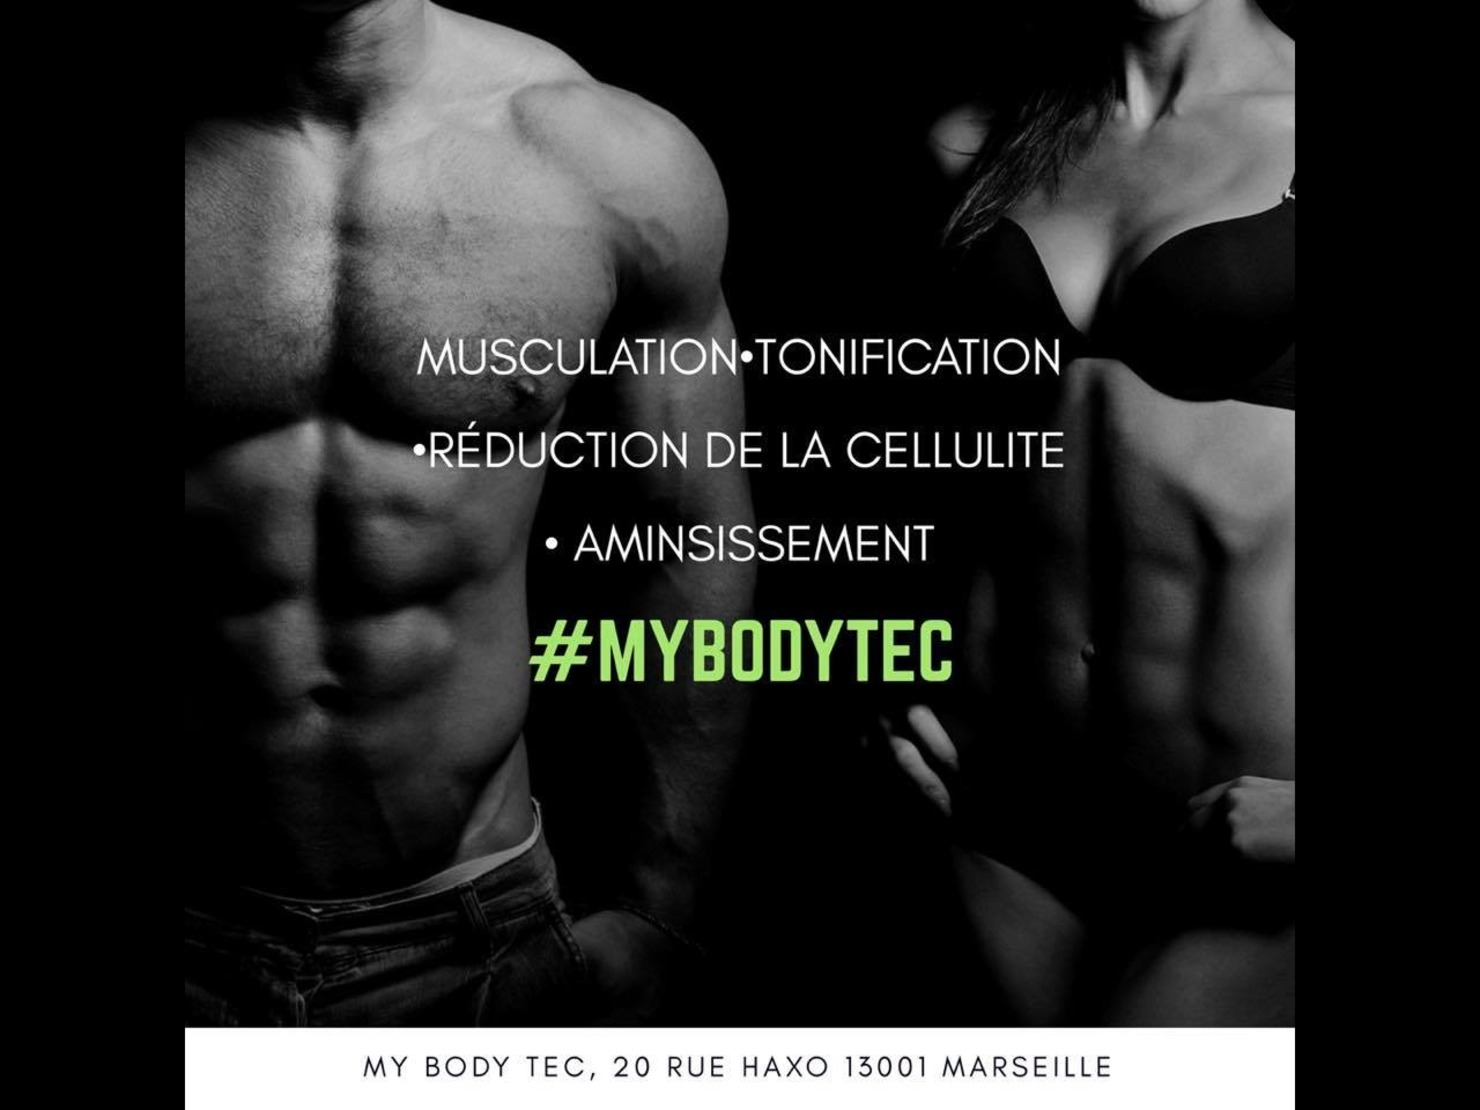 My BodyTec Marseille